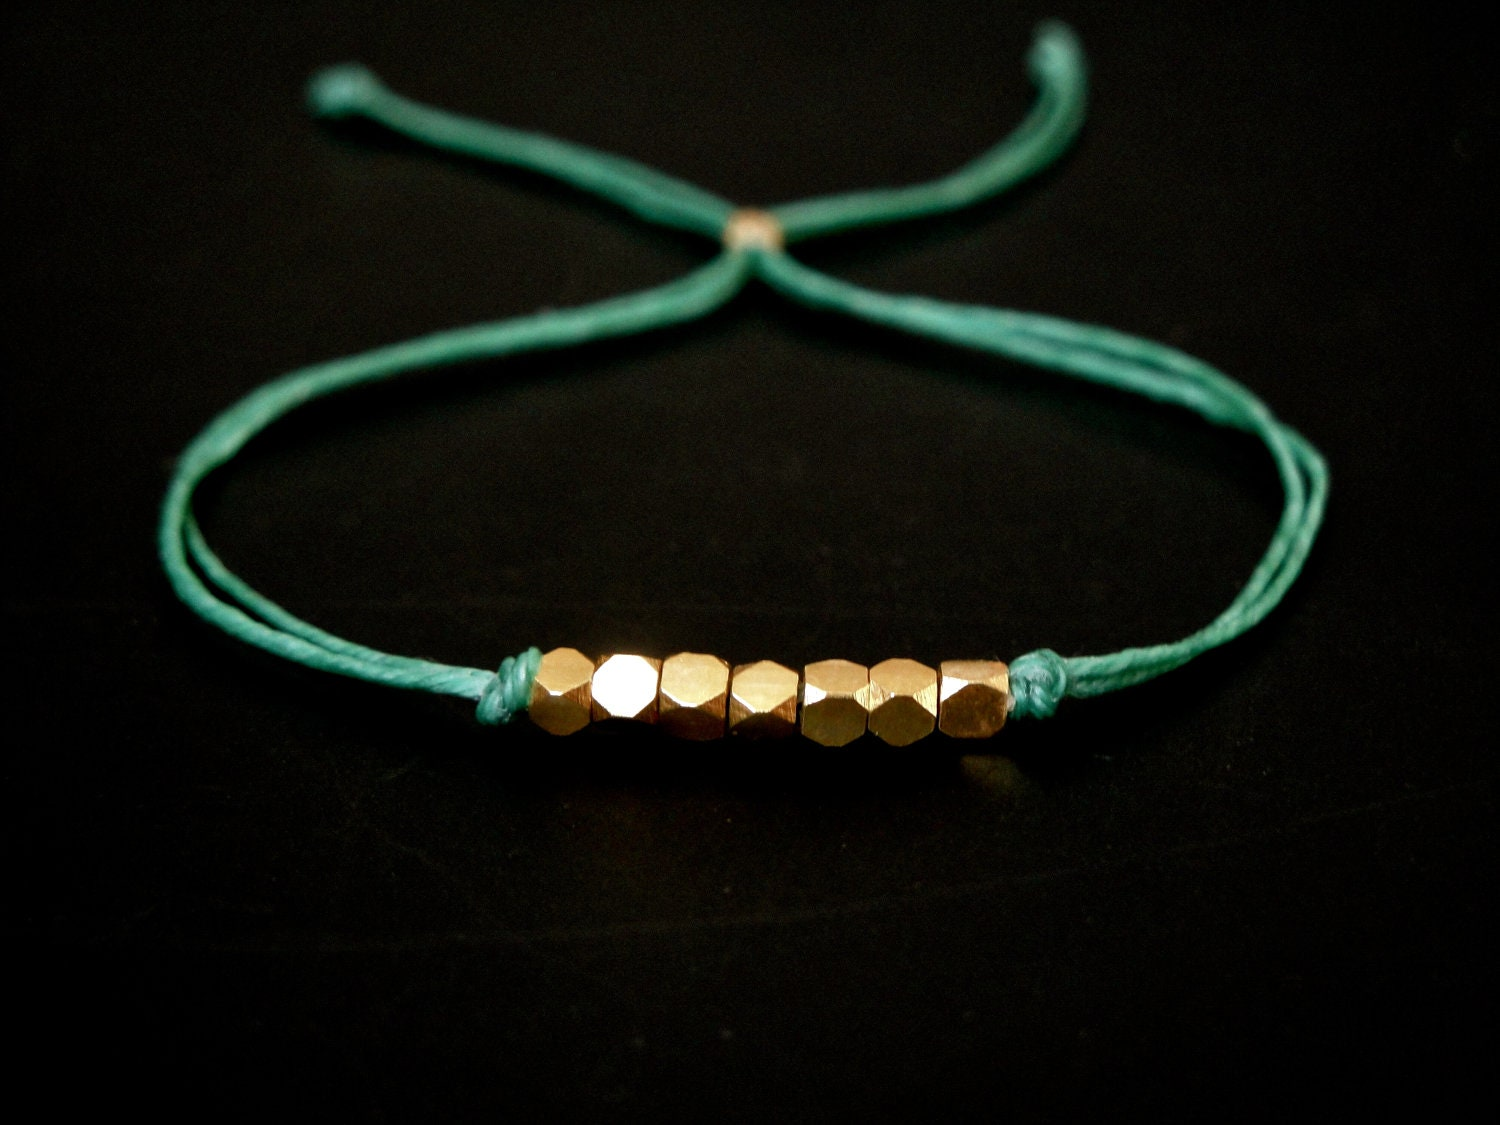 wish bracelet - ultramarine green with faceted gold vermeil beads - aimeepawluk